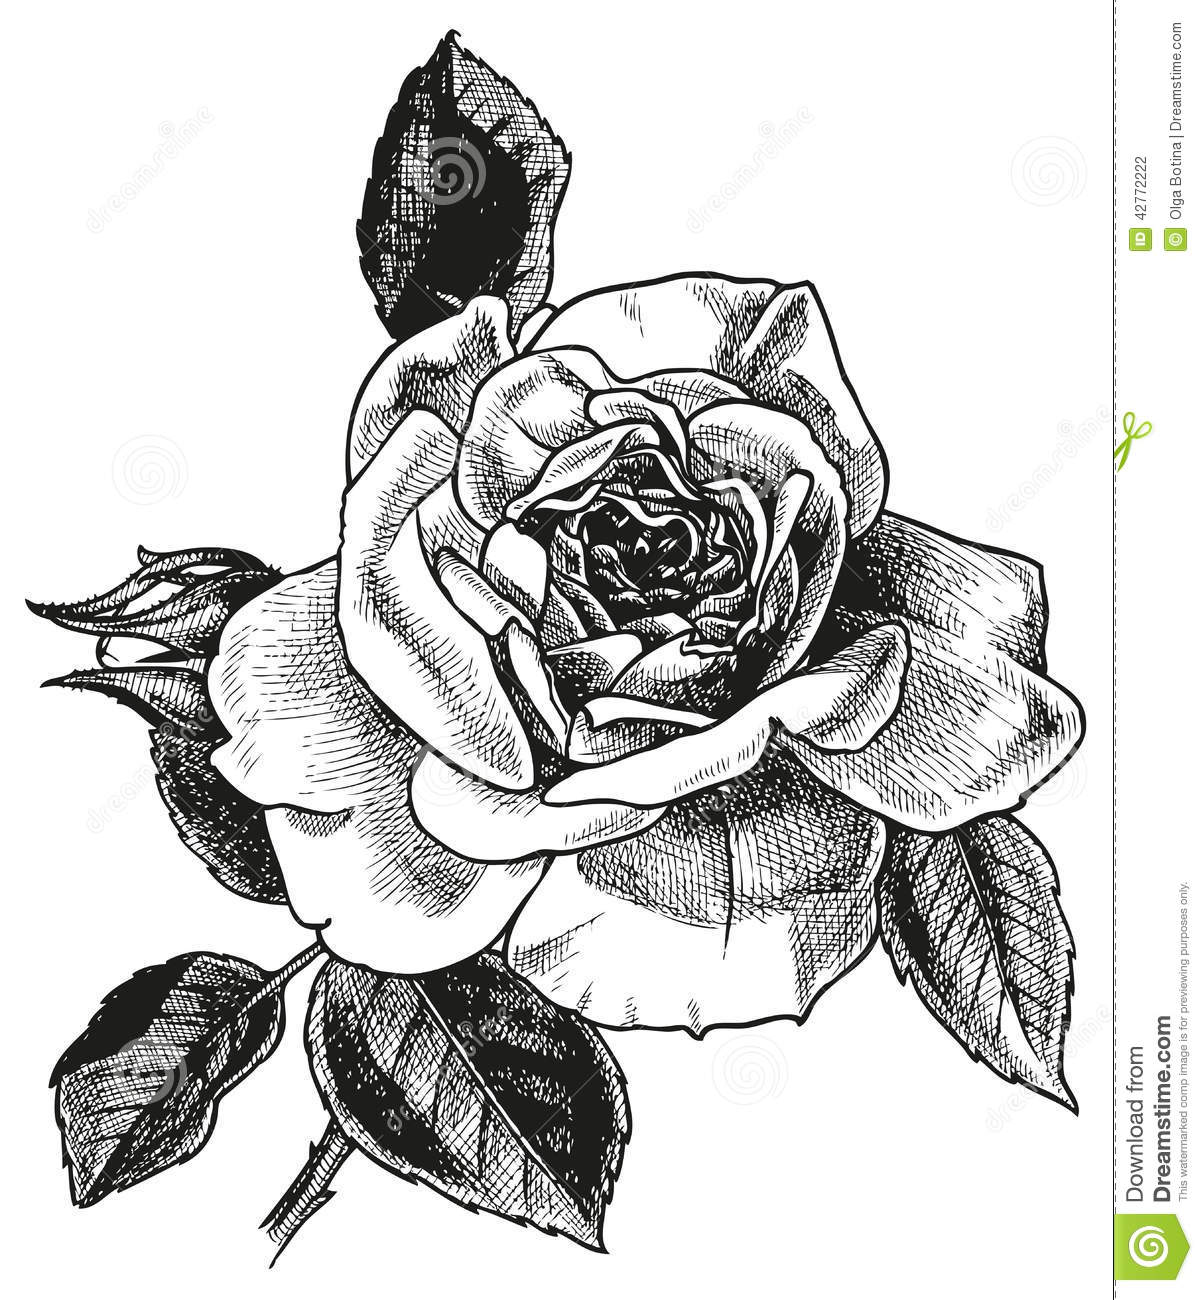 Dessin de main de rose illustration de vecteur illustration du fleur 42772222 - Dessins de rose ...